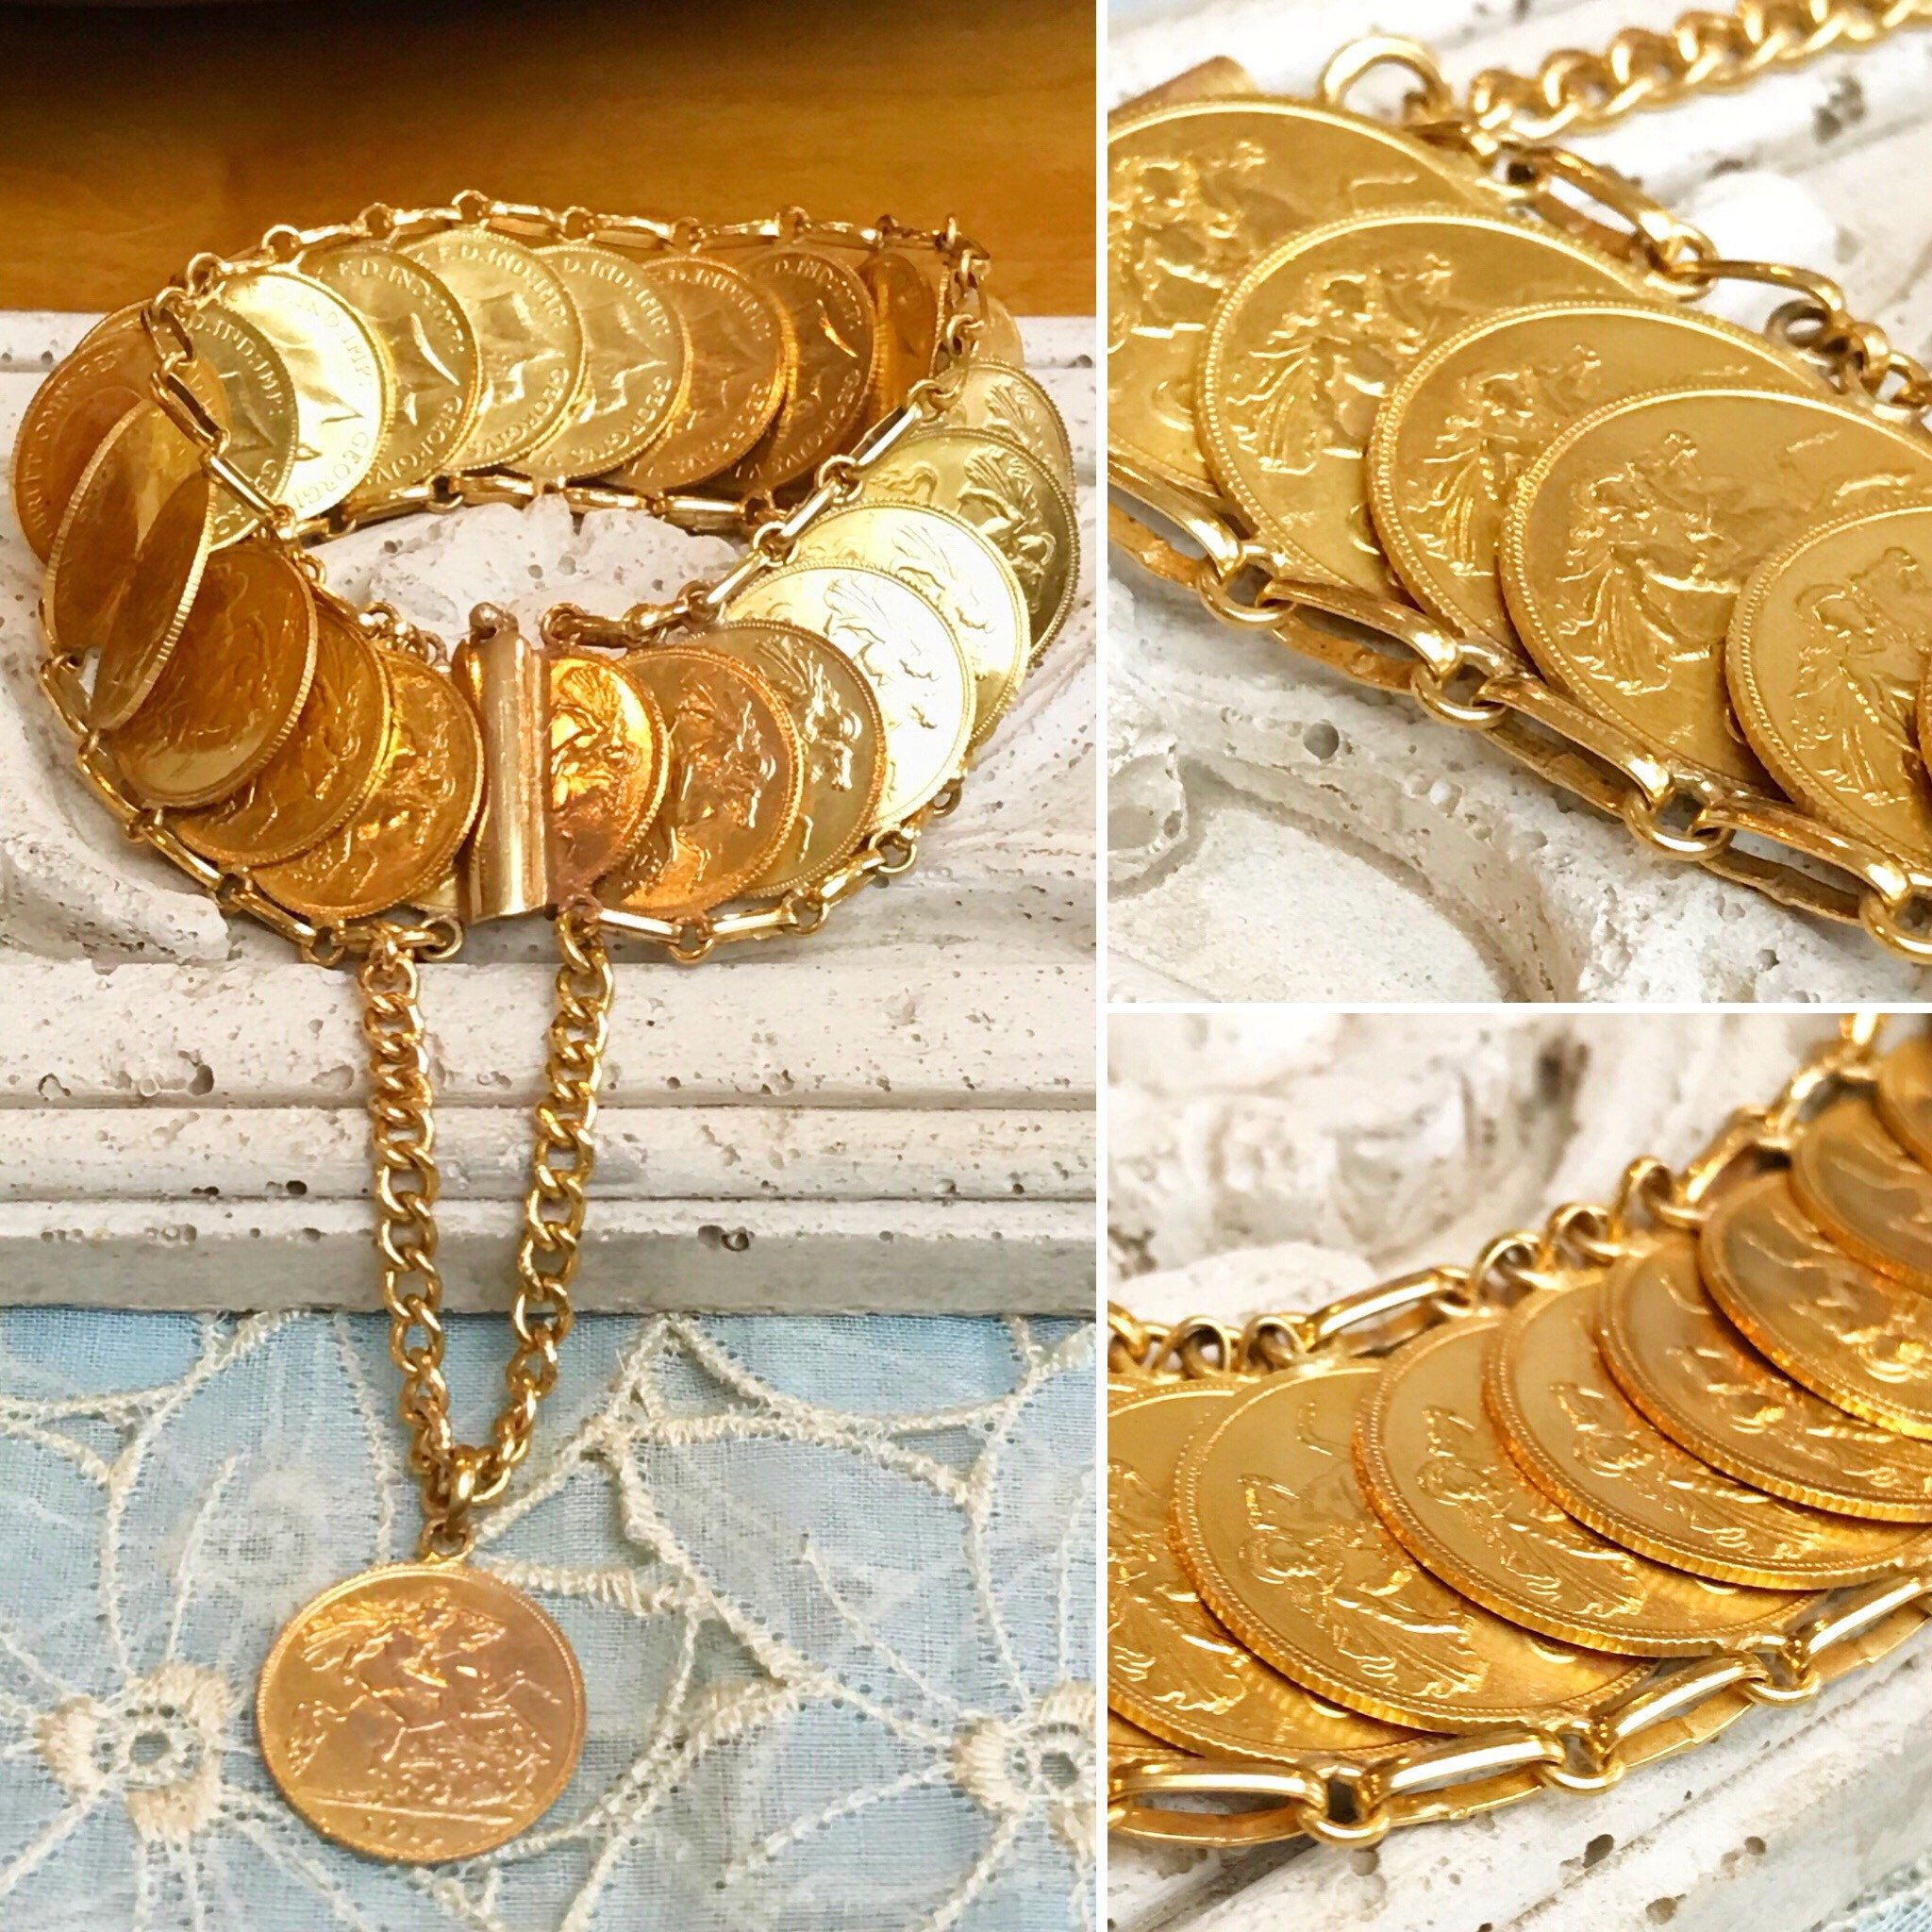 Handmade Estate Solid 21k Yellow Gold Coin Link Bracelet 21k Etsy Gold Coins Coin Bracelet Black Gold Jewelry